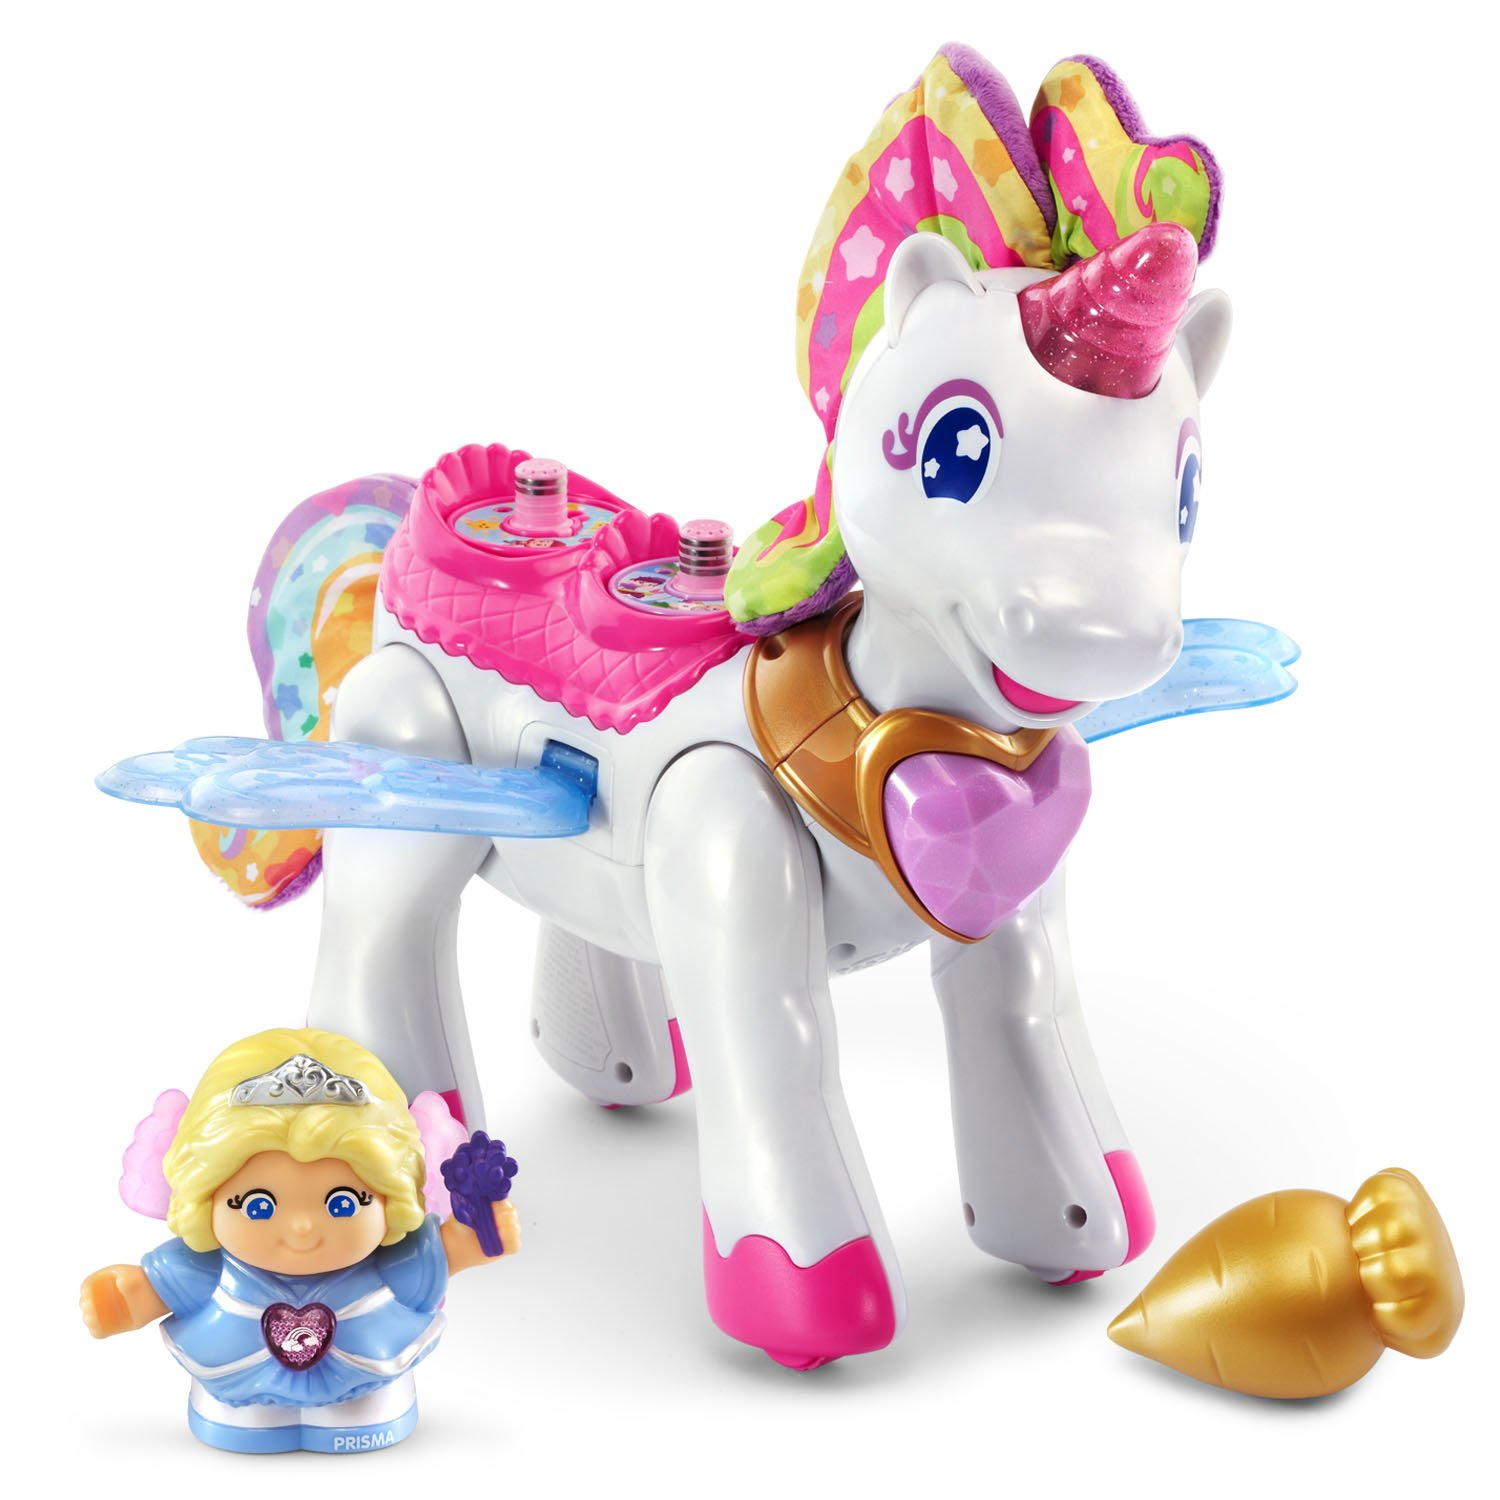 23 Best Unicorn Toys and Gifts for Girls Reviews of 2021 41